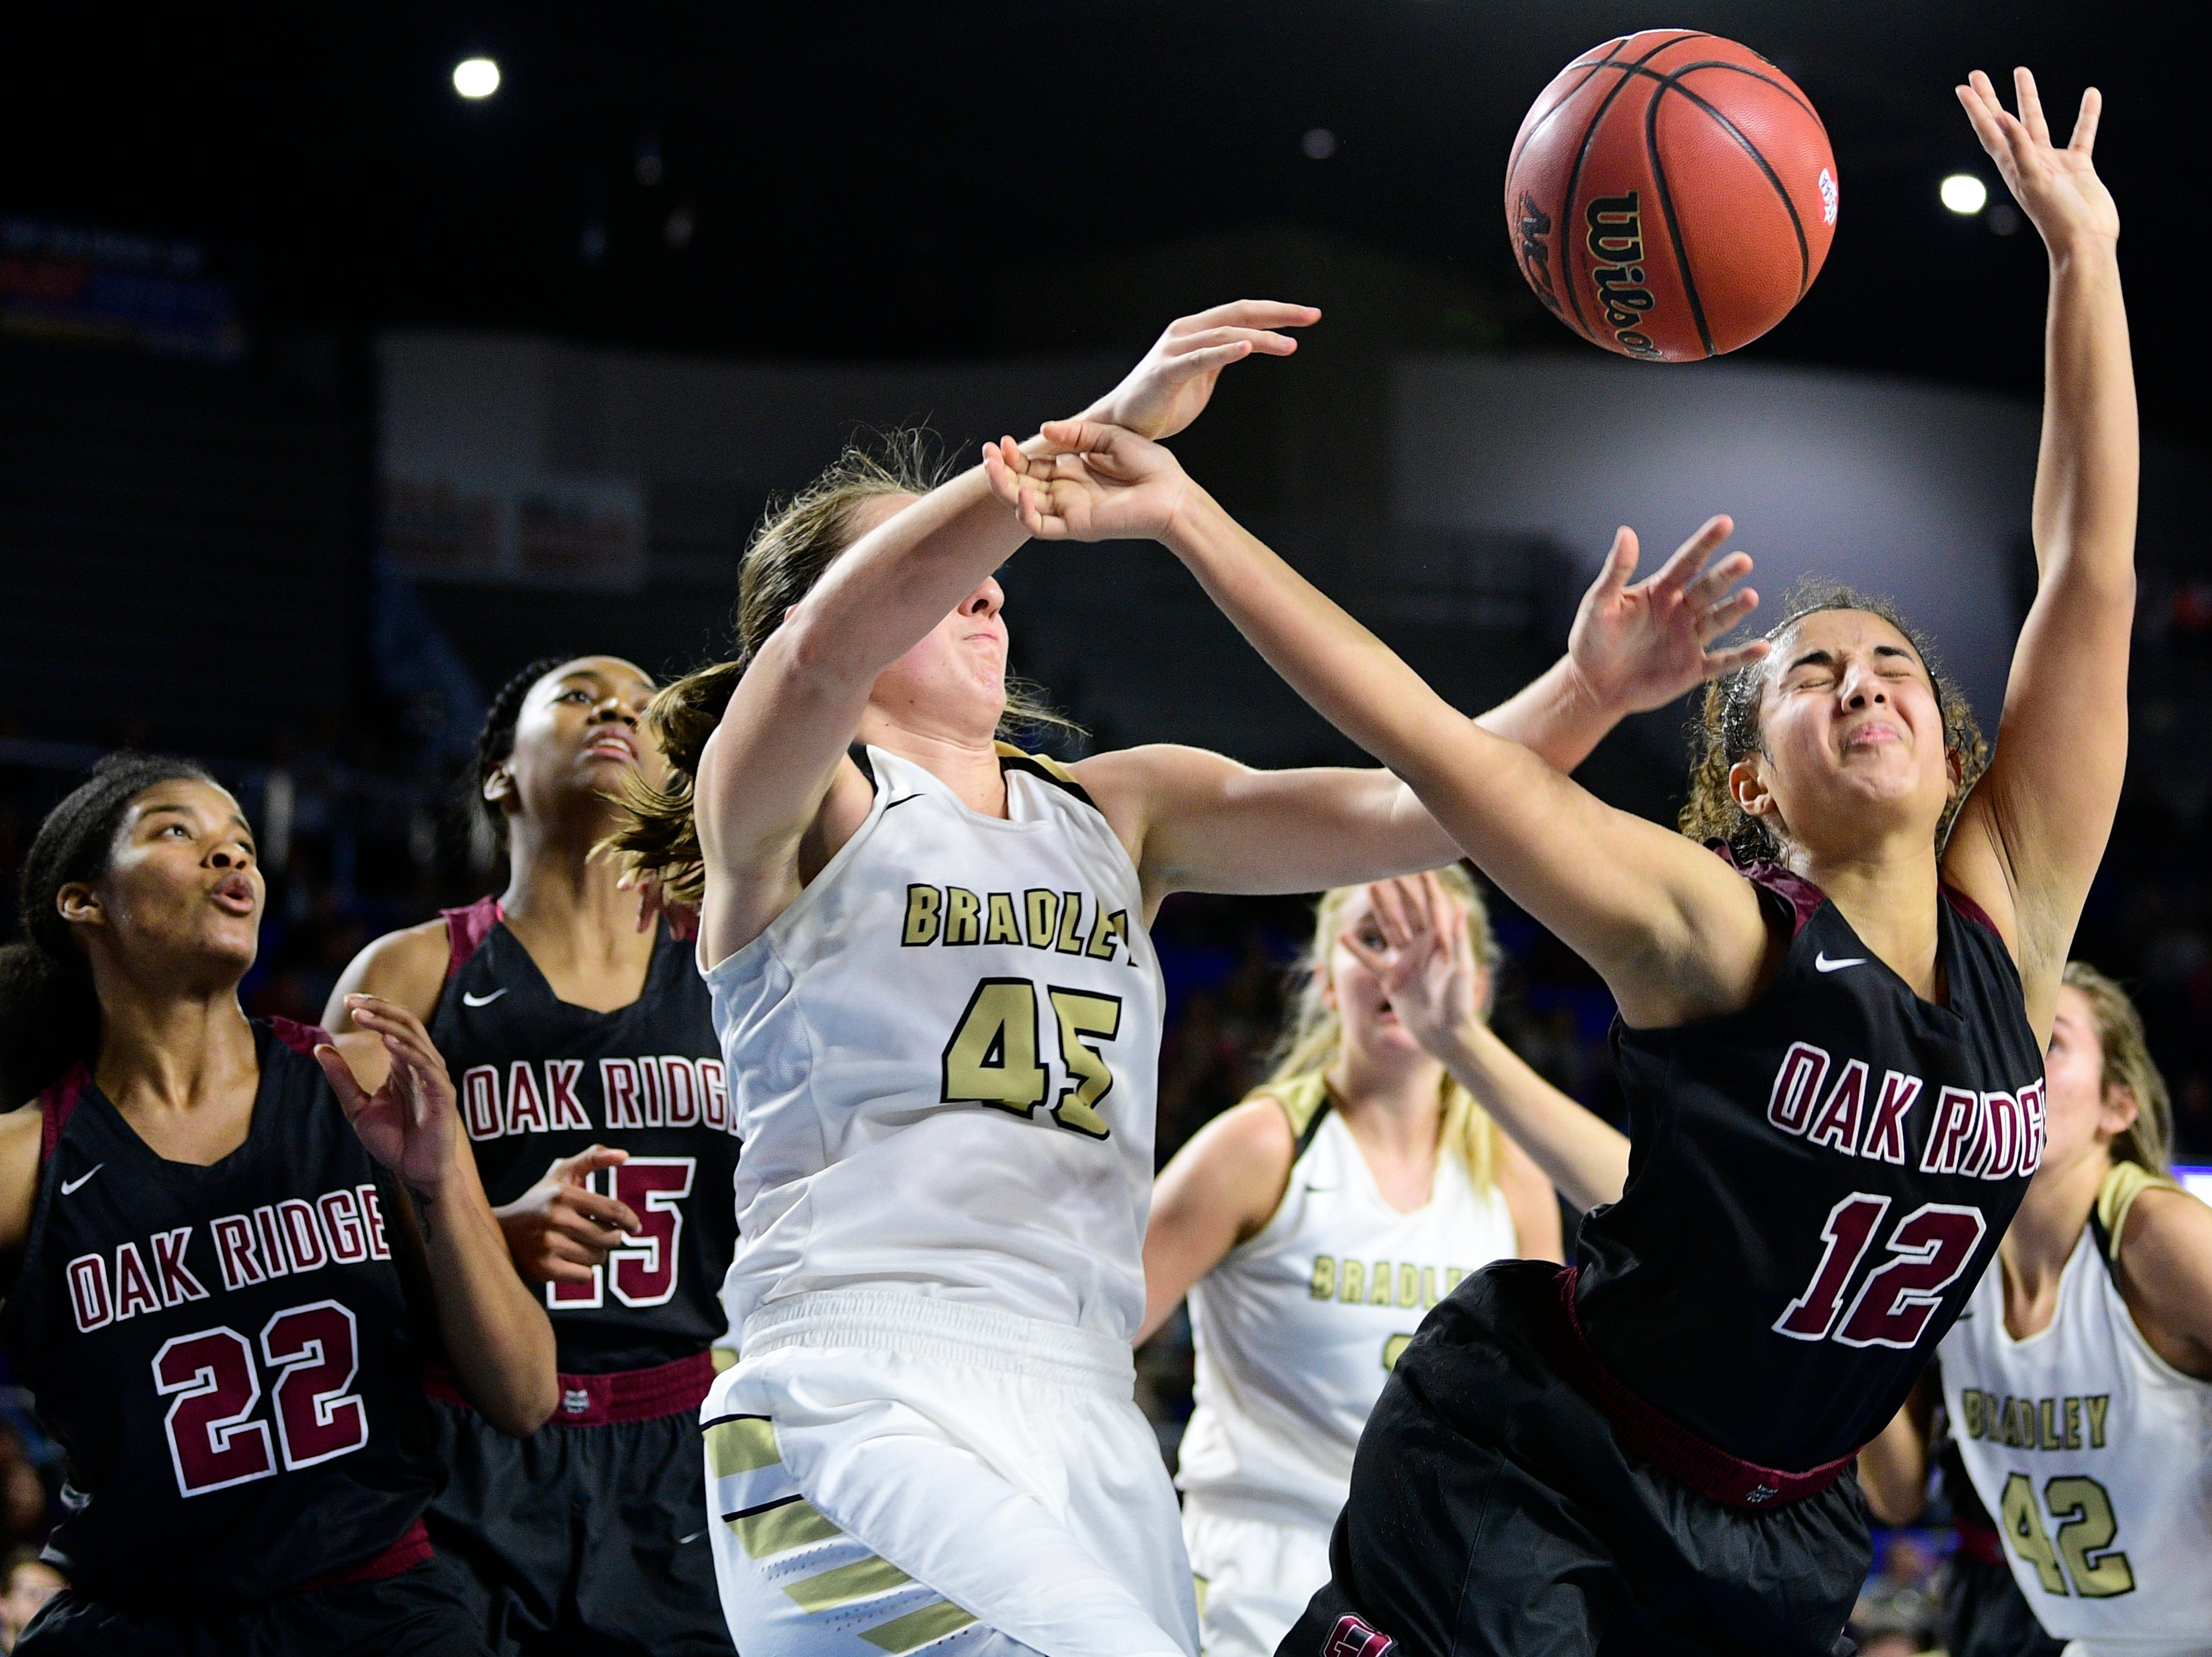 Oak Ridge's Brianna Dunbar (12) loses the ball as Bradley Central's Hannah Lombard (45) defends during a game between Oak Ridge and Bradley Central at the TSSAA girls state tournament at the Murphy Center in Murfreesboro, Tennessee on Friday, March 8, 2019.